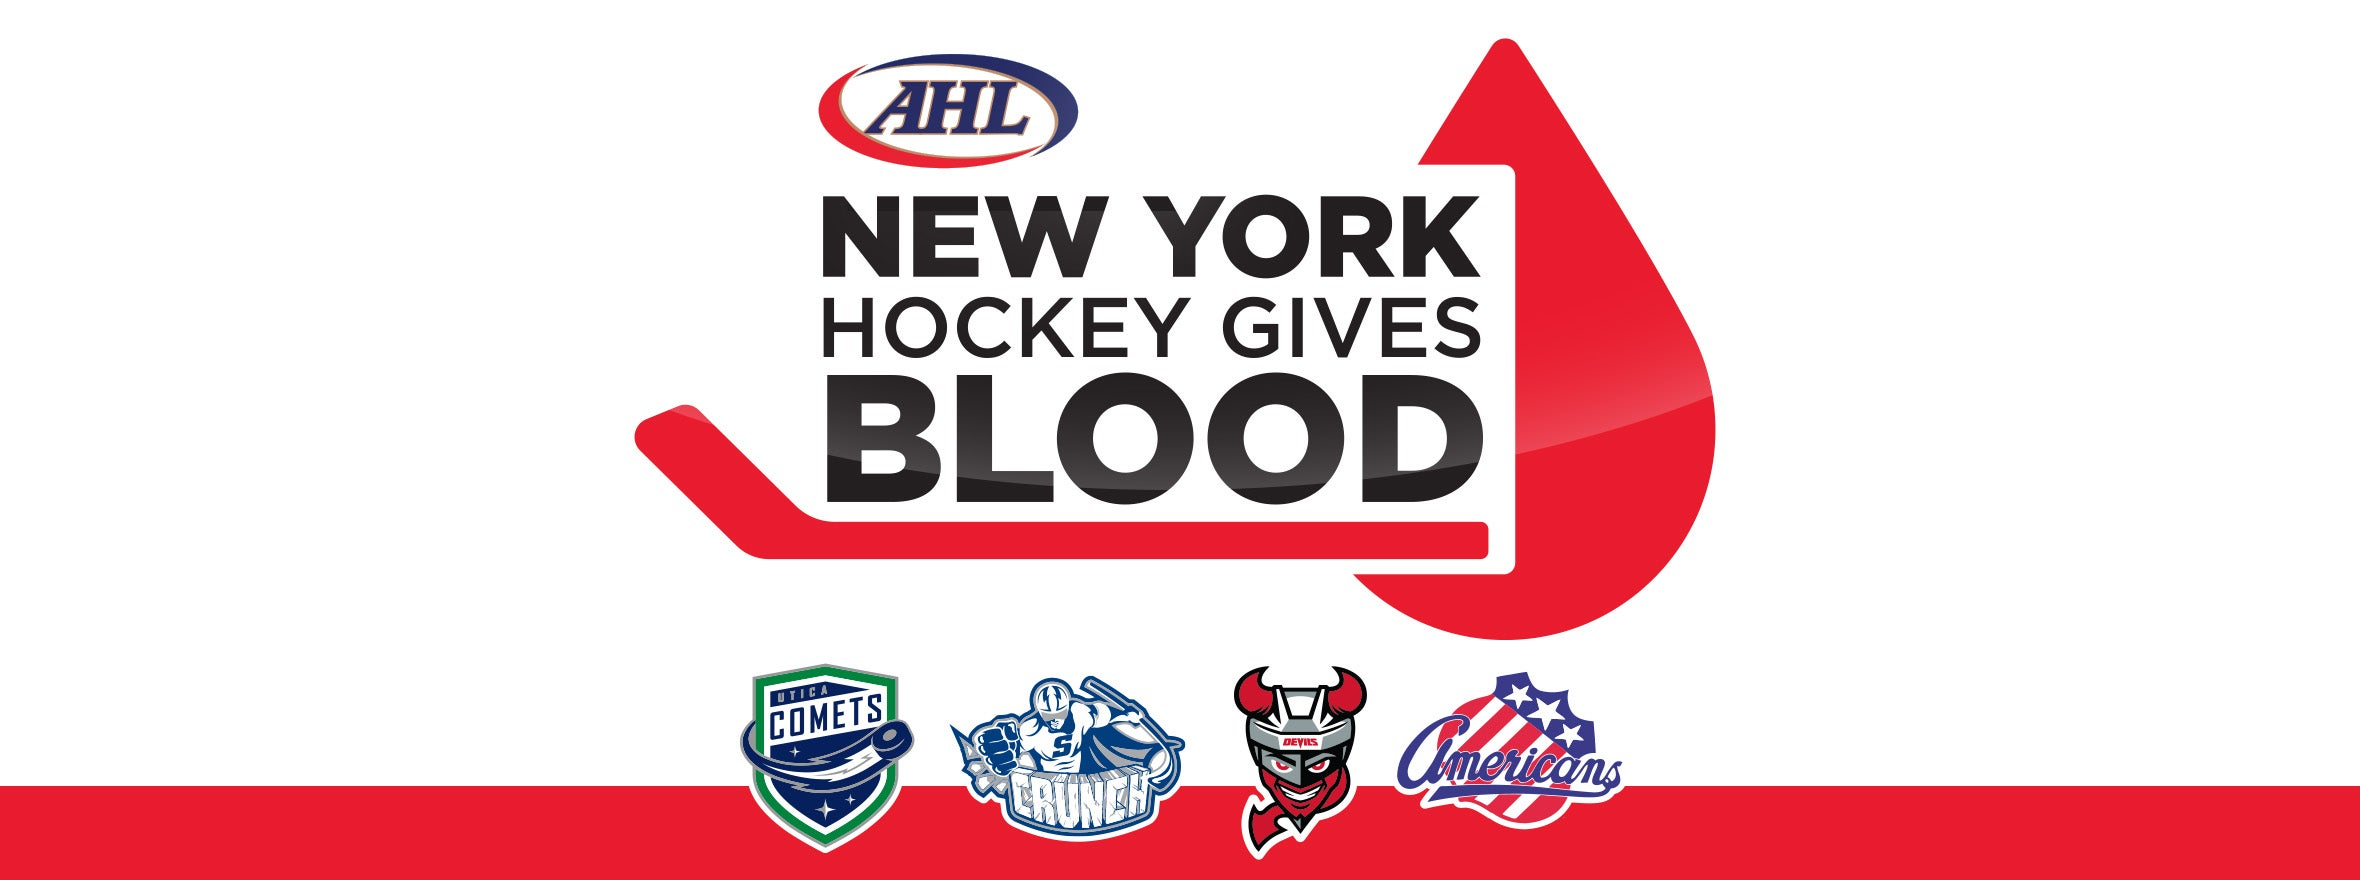 NEW YORK HOCKEY GIVES BLOOD